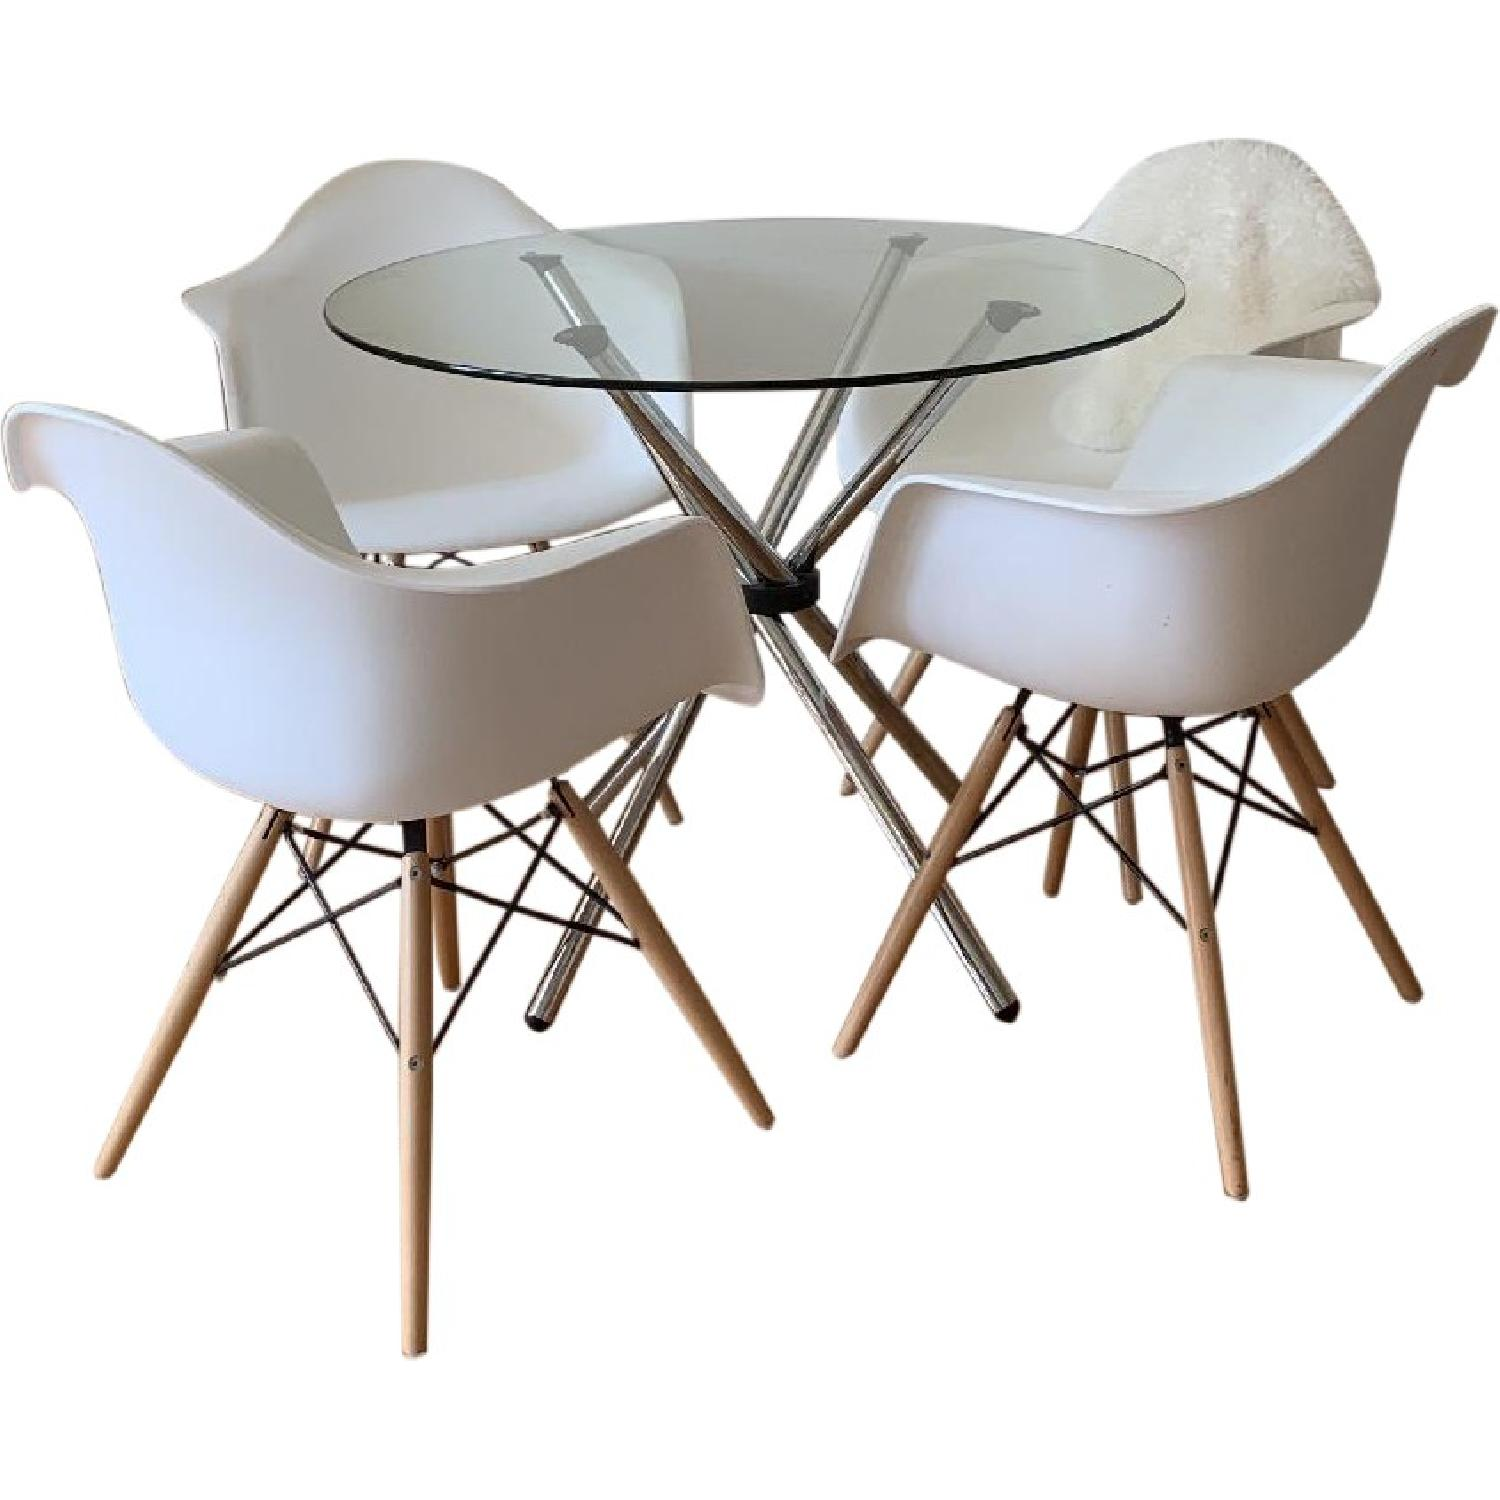 Contemporary Mid-Century Glass Top Dining Table w/ 4 Chairs